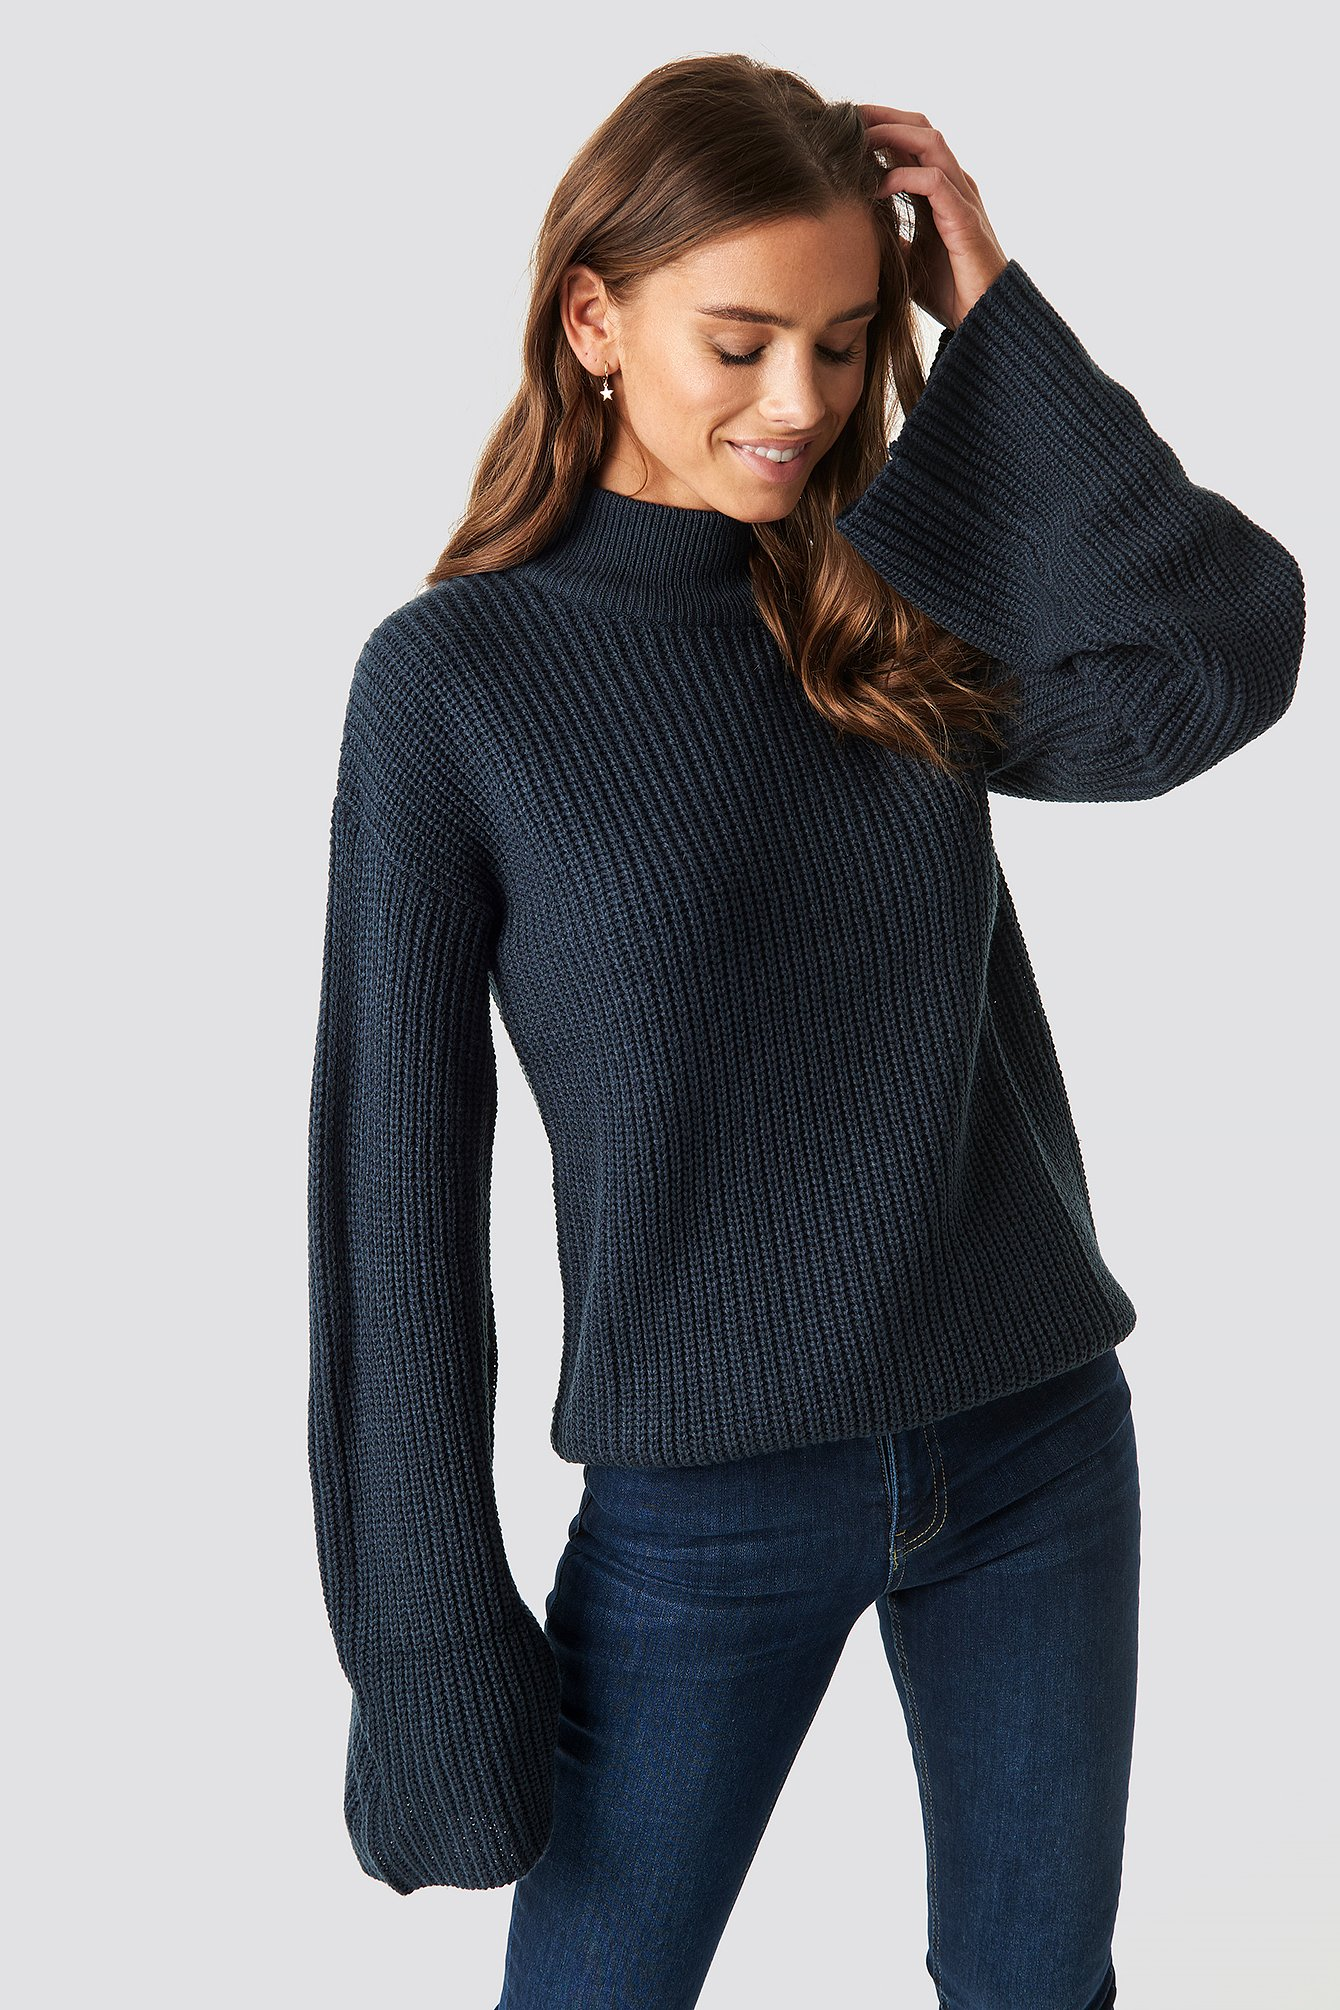 44c7eb3a87 Women turtleneck high neck turtleneck tops jpg 640x960 High turtleneck